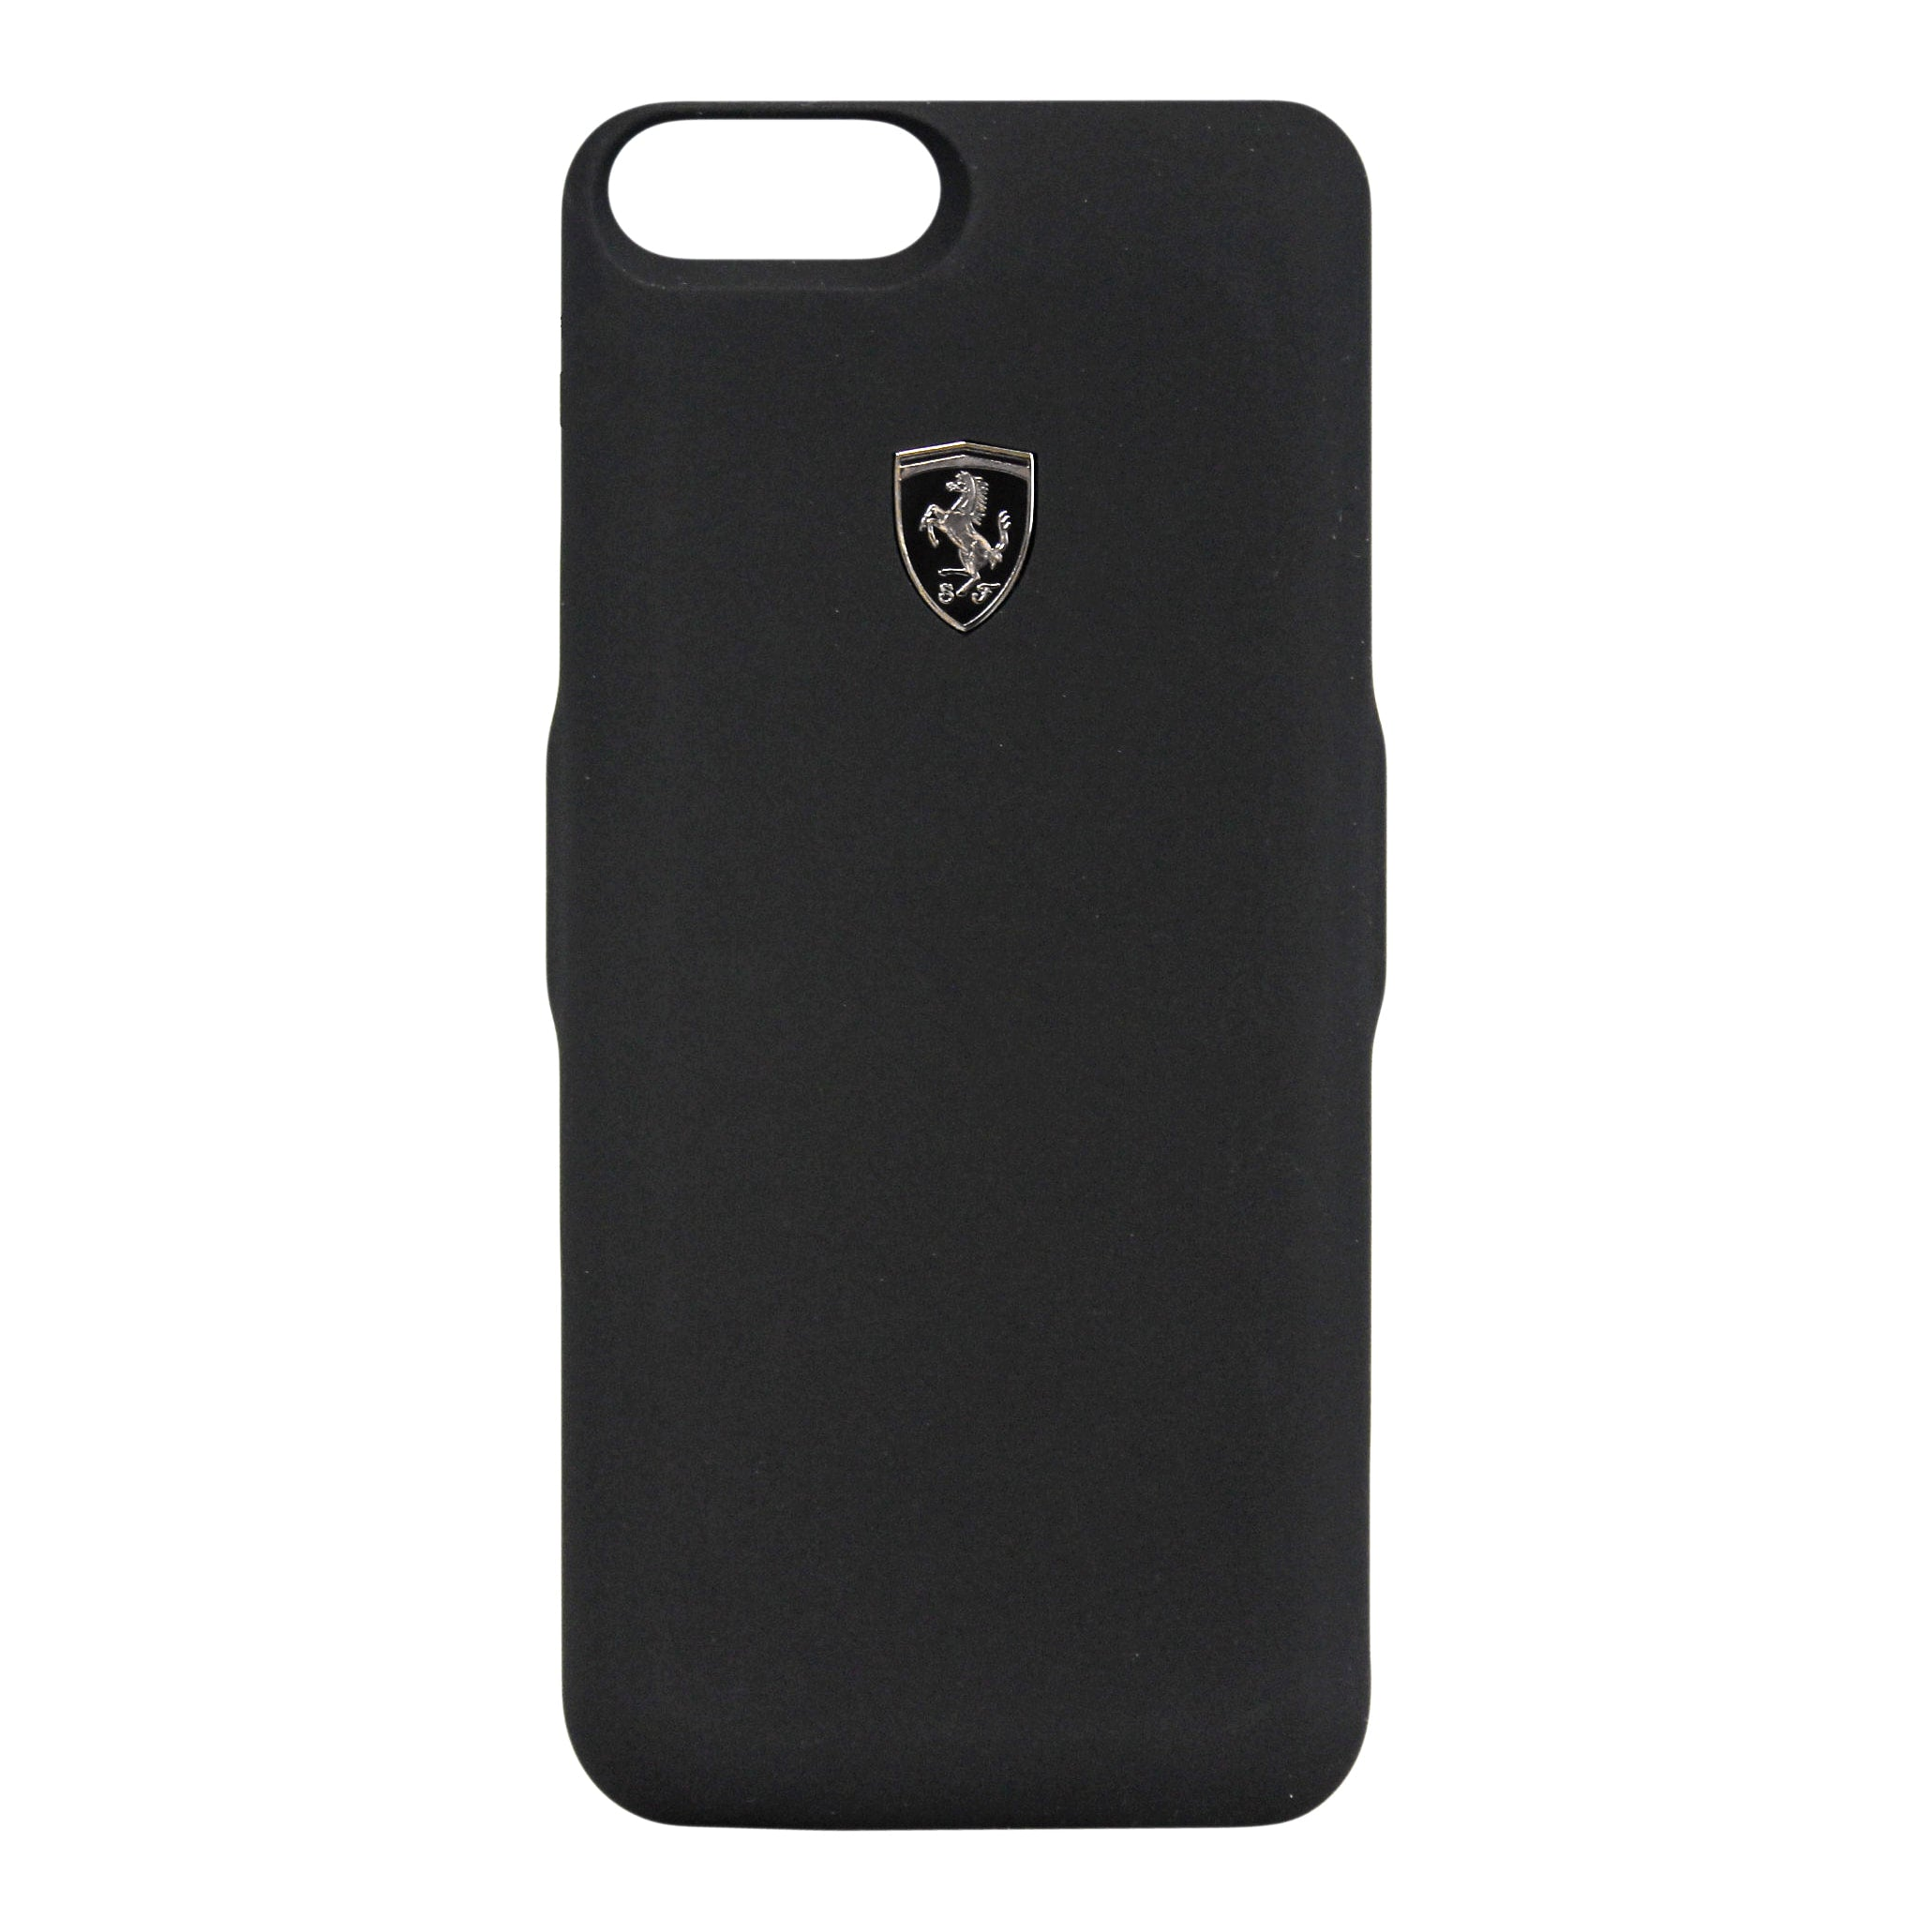 Scuderia Ferrari Power Phone Case iPhone 8 Plus, 7 Plus / 6 & 6S Plus